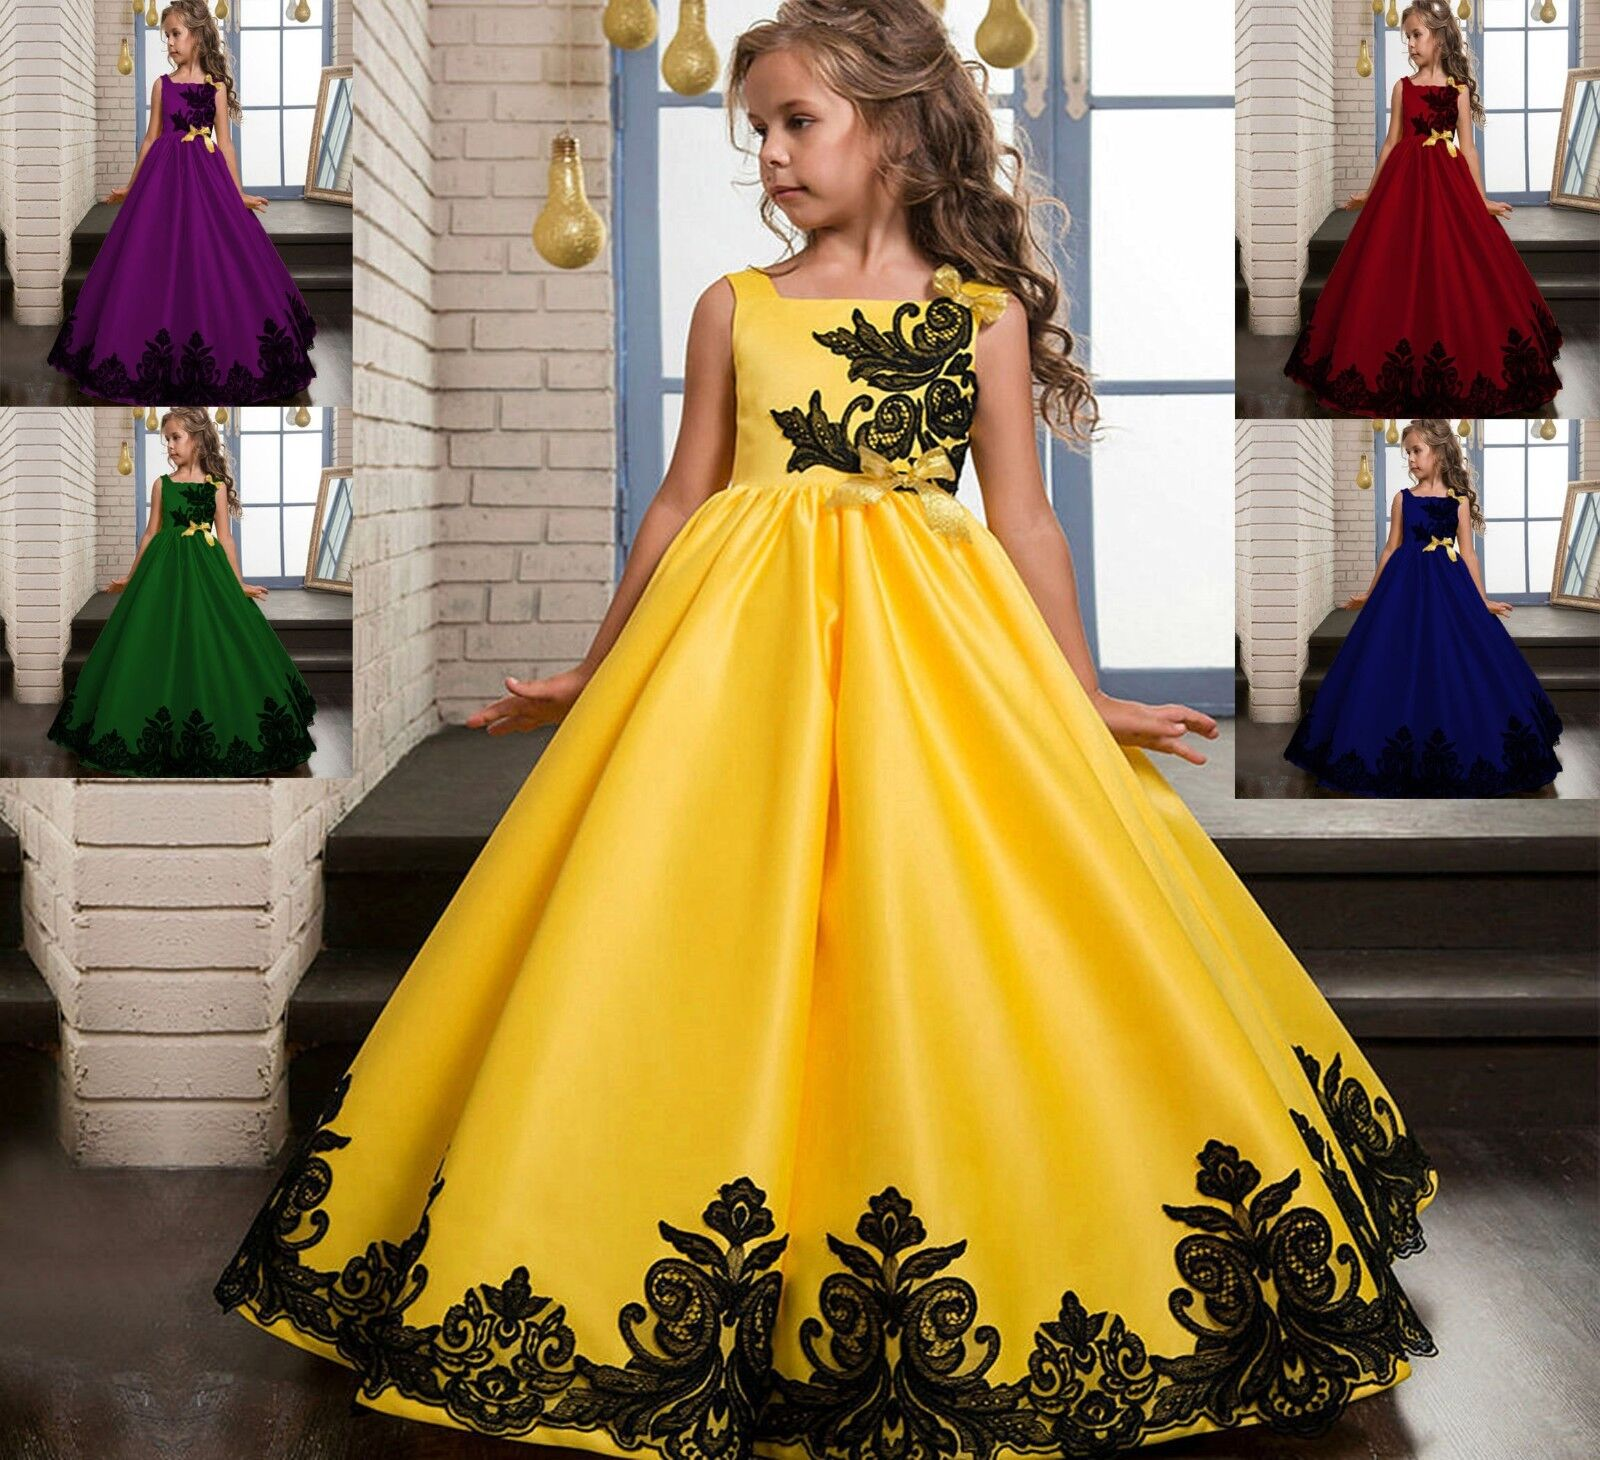 27d9a17376 Details about Flower Girl Dress Princess Party Wedding Bridesmaid Kid  Formal Gown Long Dresses